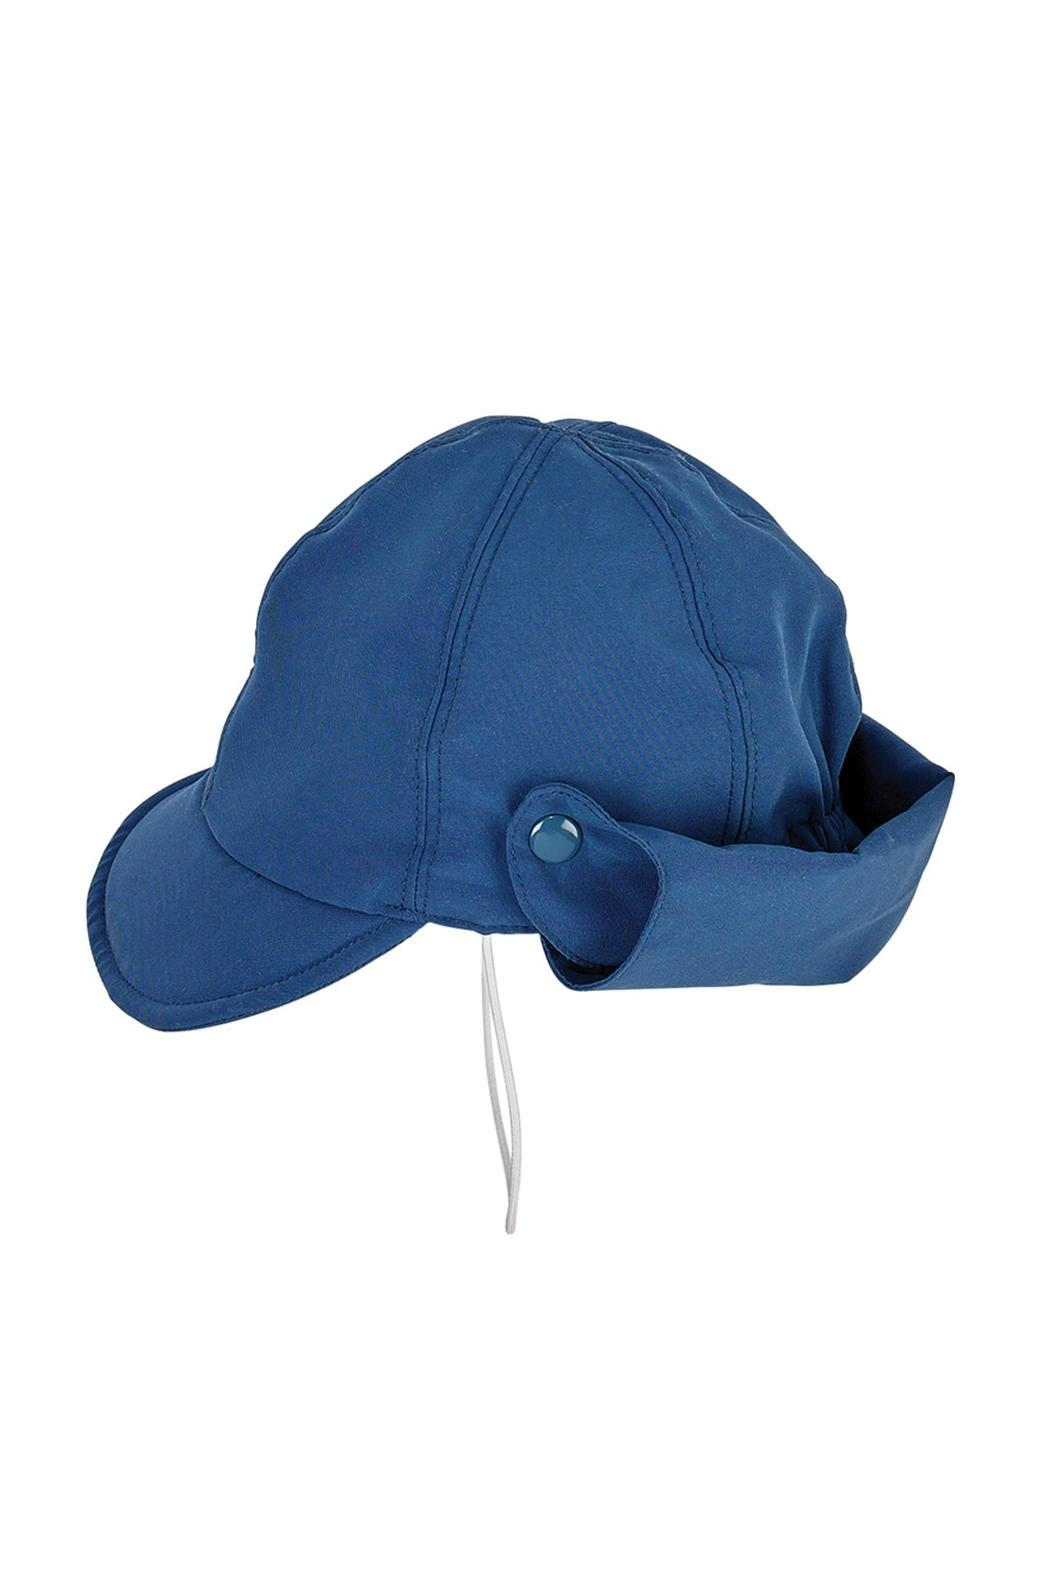 Archimede Navy-Blue 'Cocon' Cap - Front Full Image